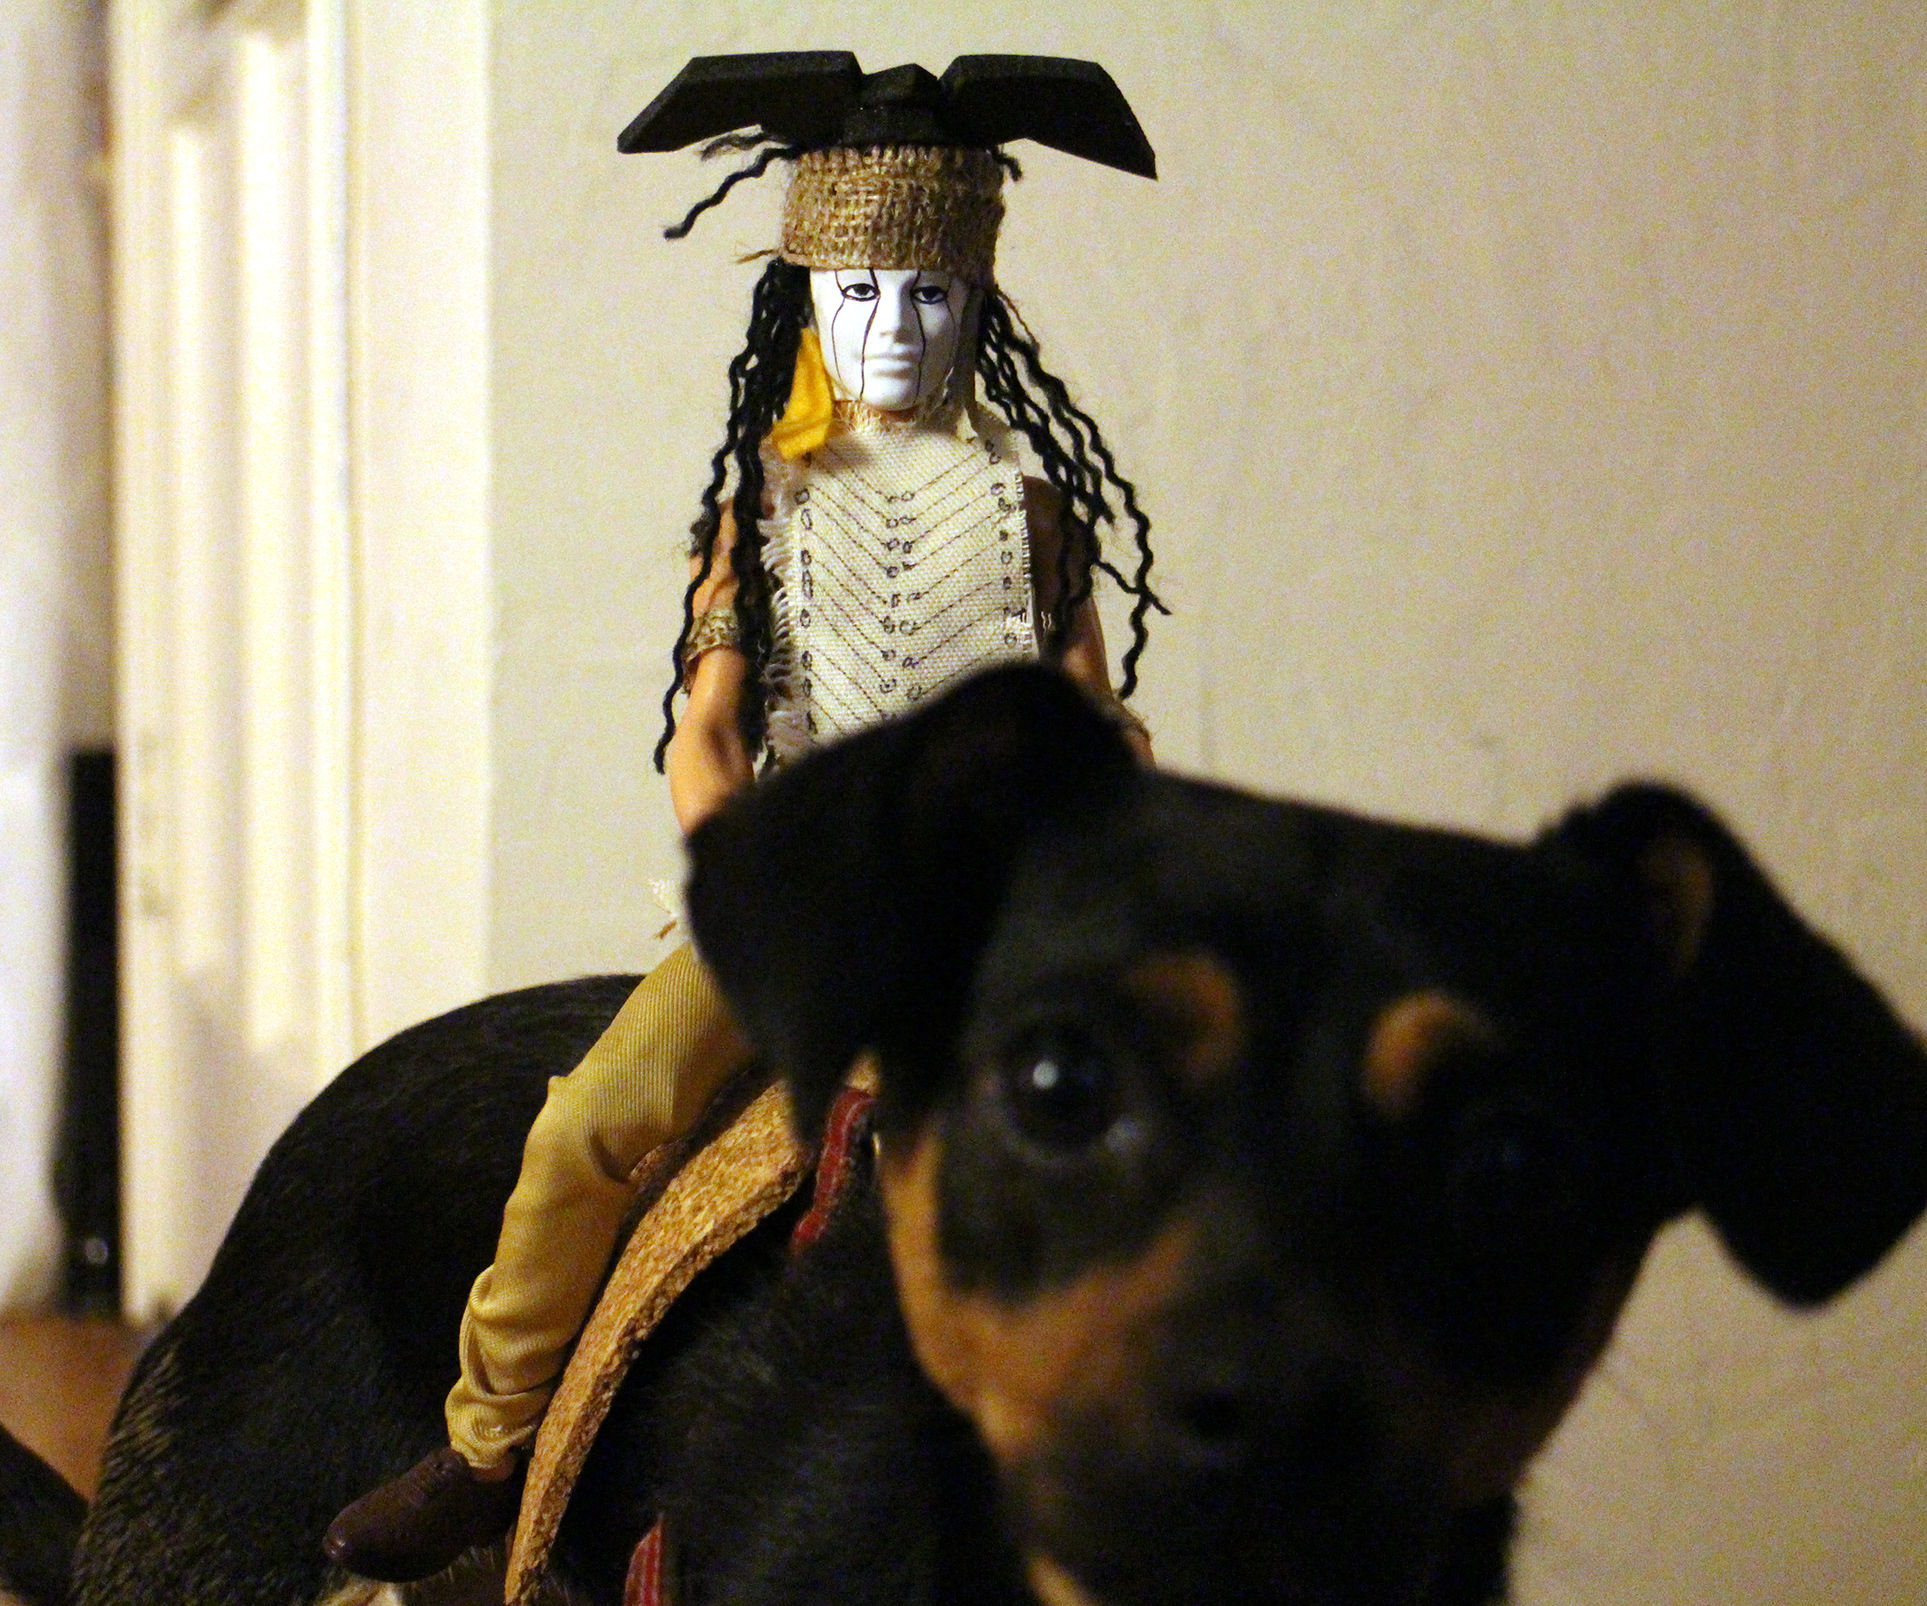 Tonto dog rider costume